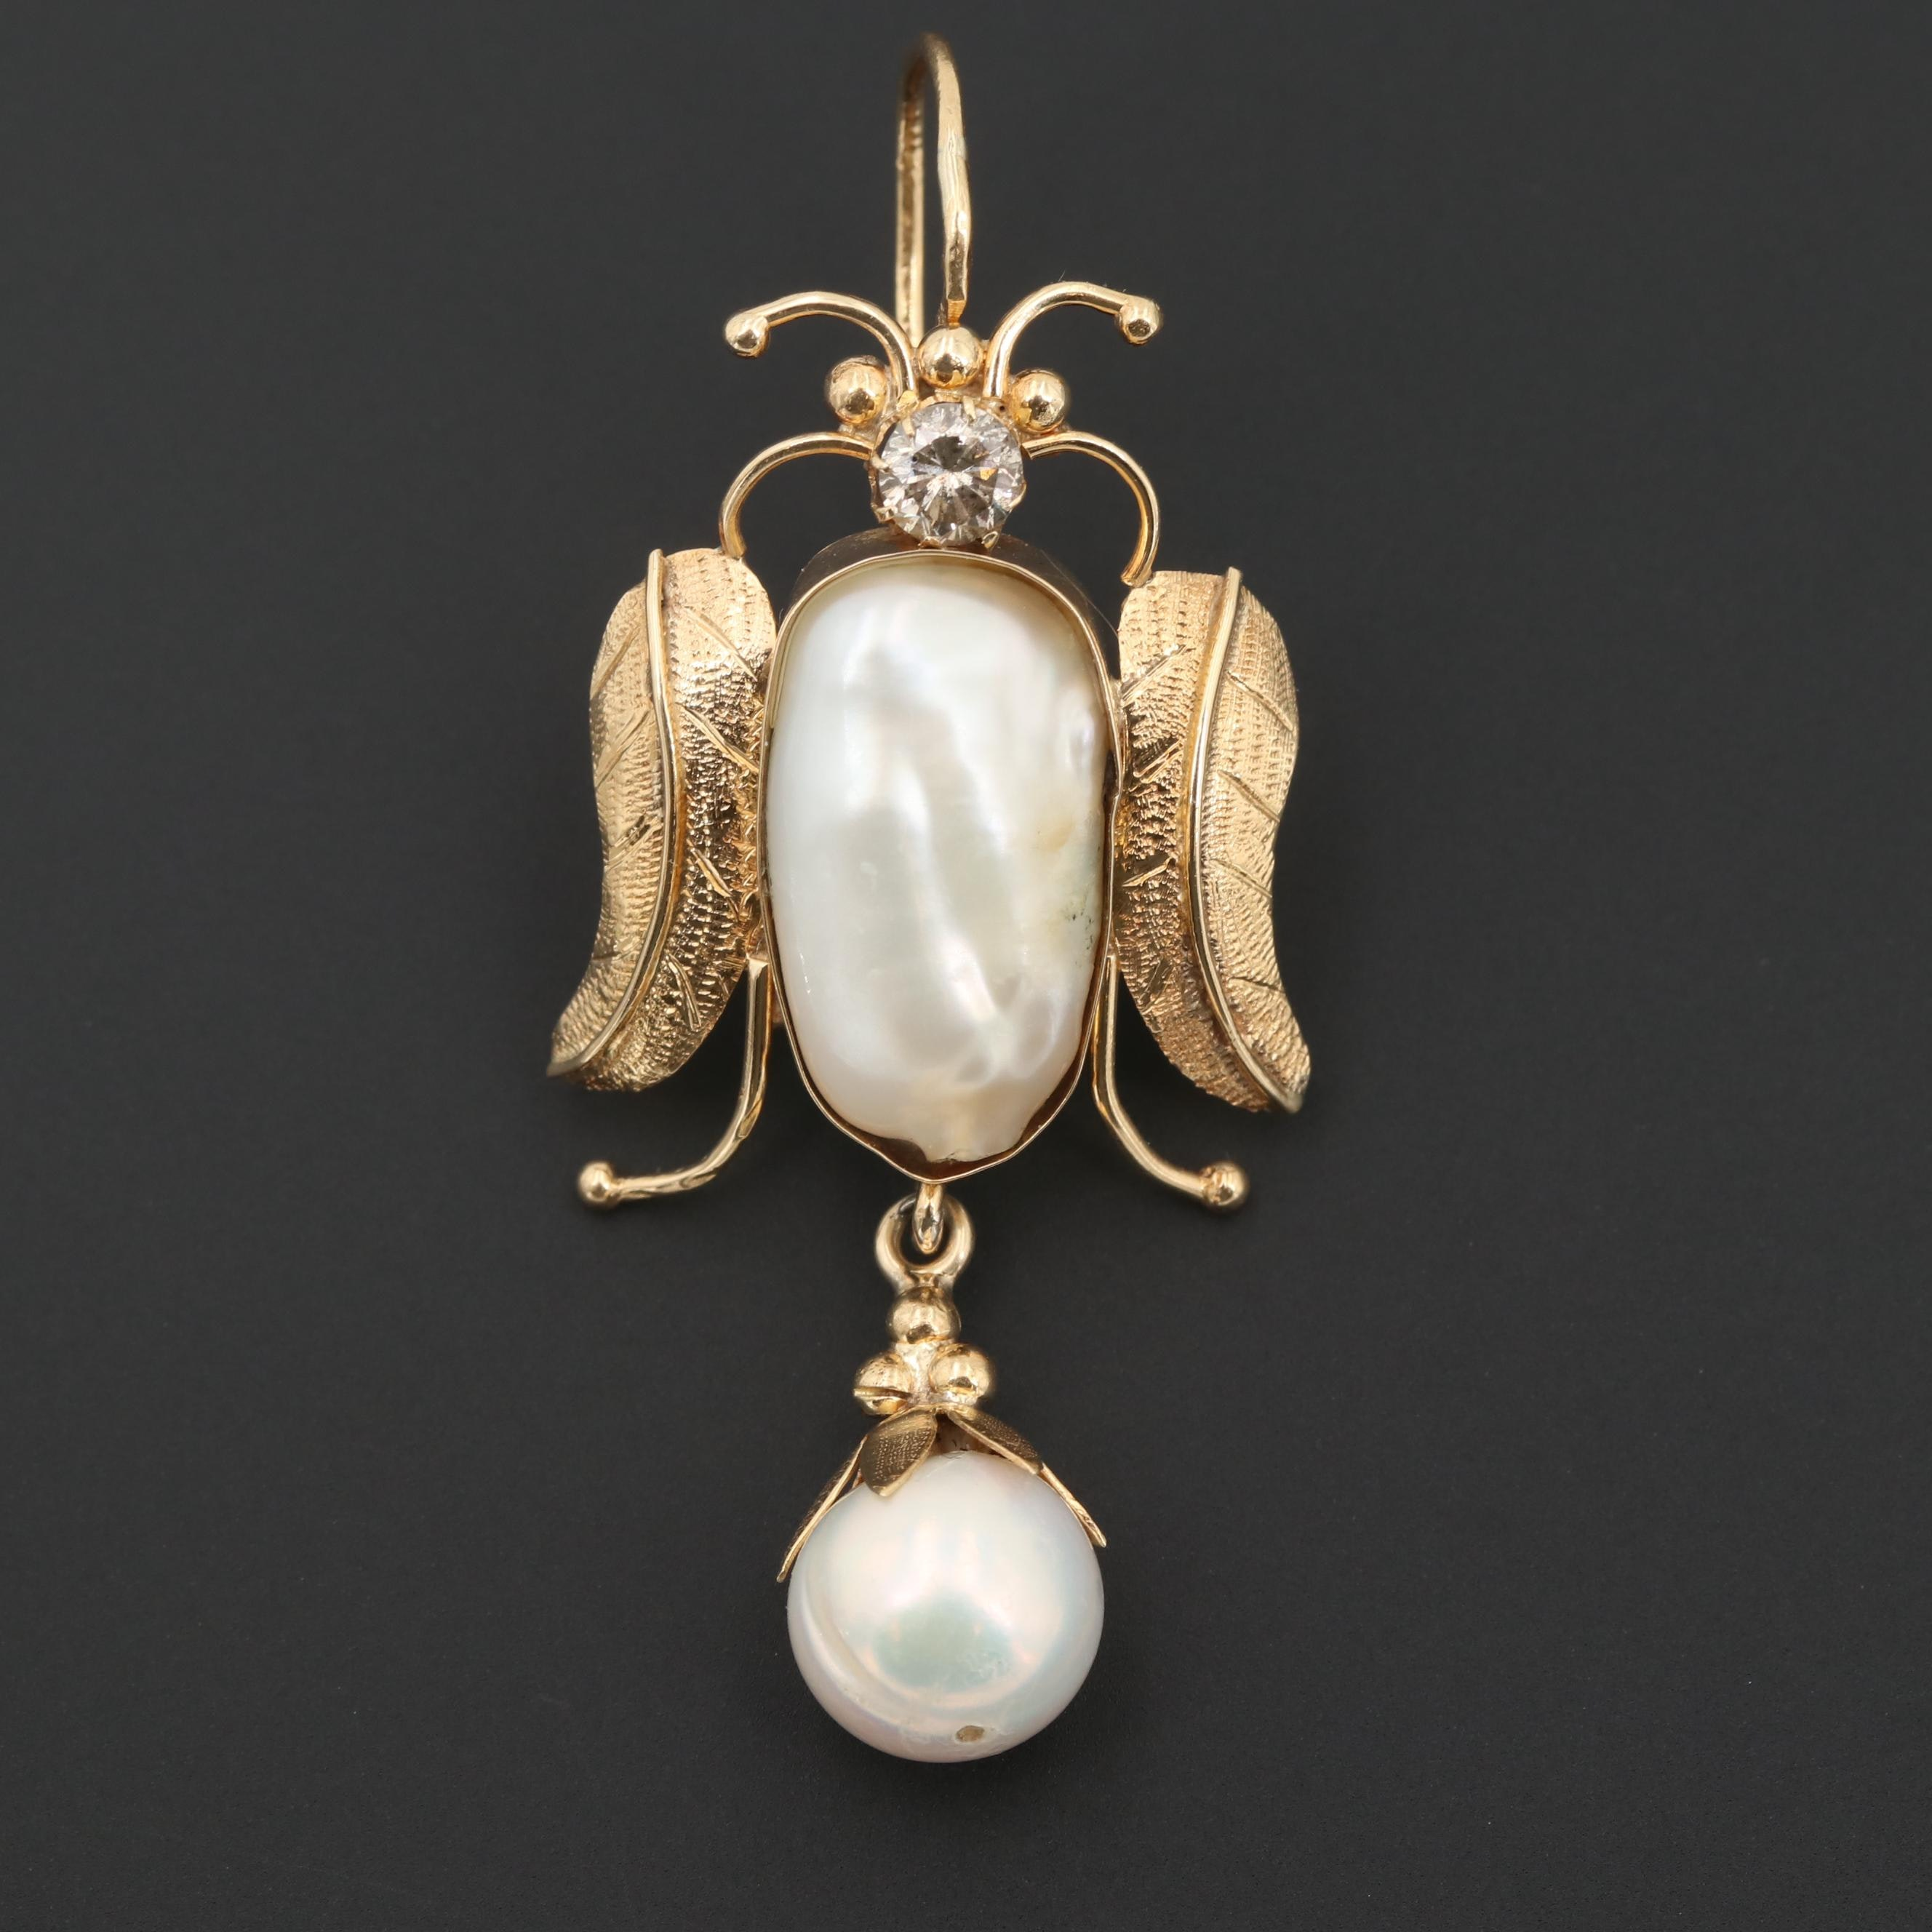 14K Yellow Gold Diamond and Cultured Pearl Enhancer Pendant